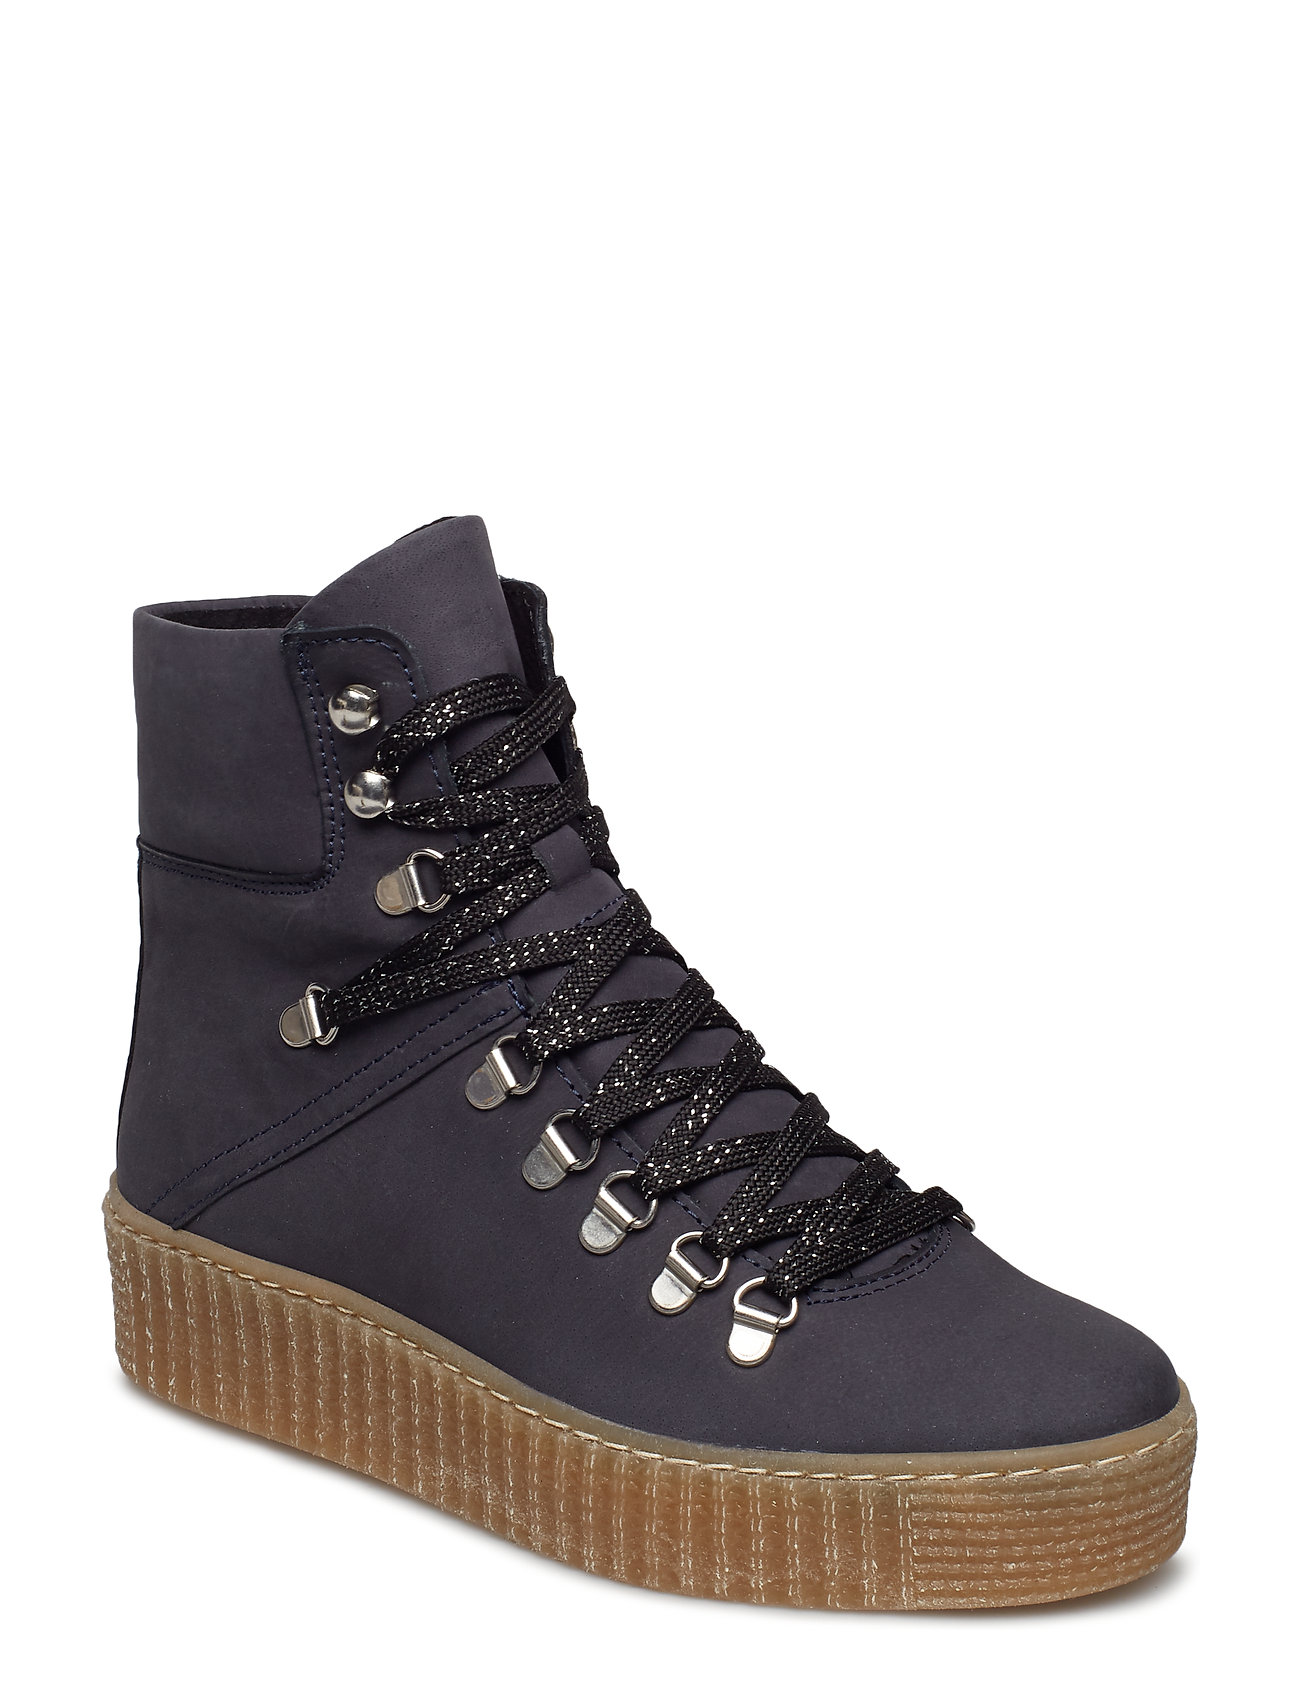 Image of Agda N Shoes Boots Ankle Boots Ankle Boot - Flat Sort Shoe The Bear (3452100407)